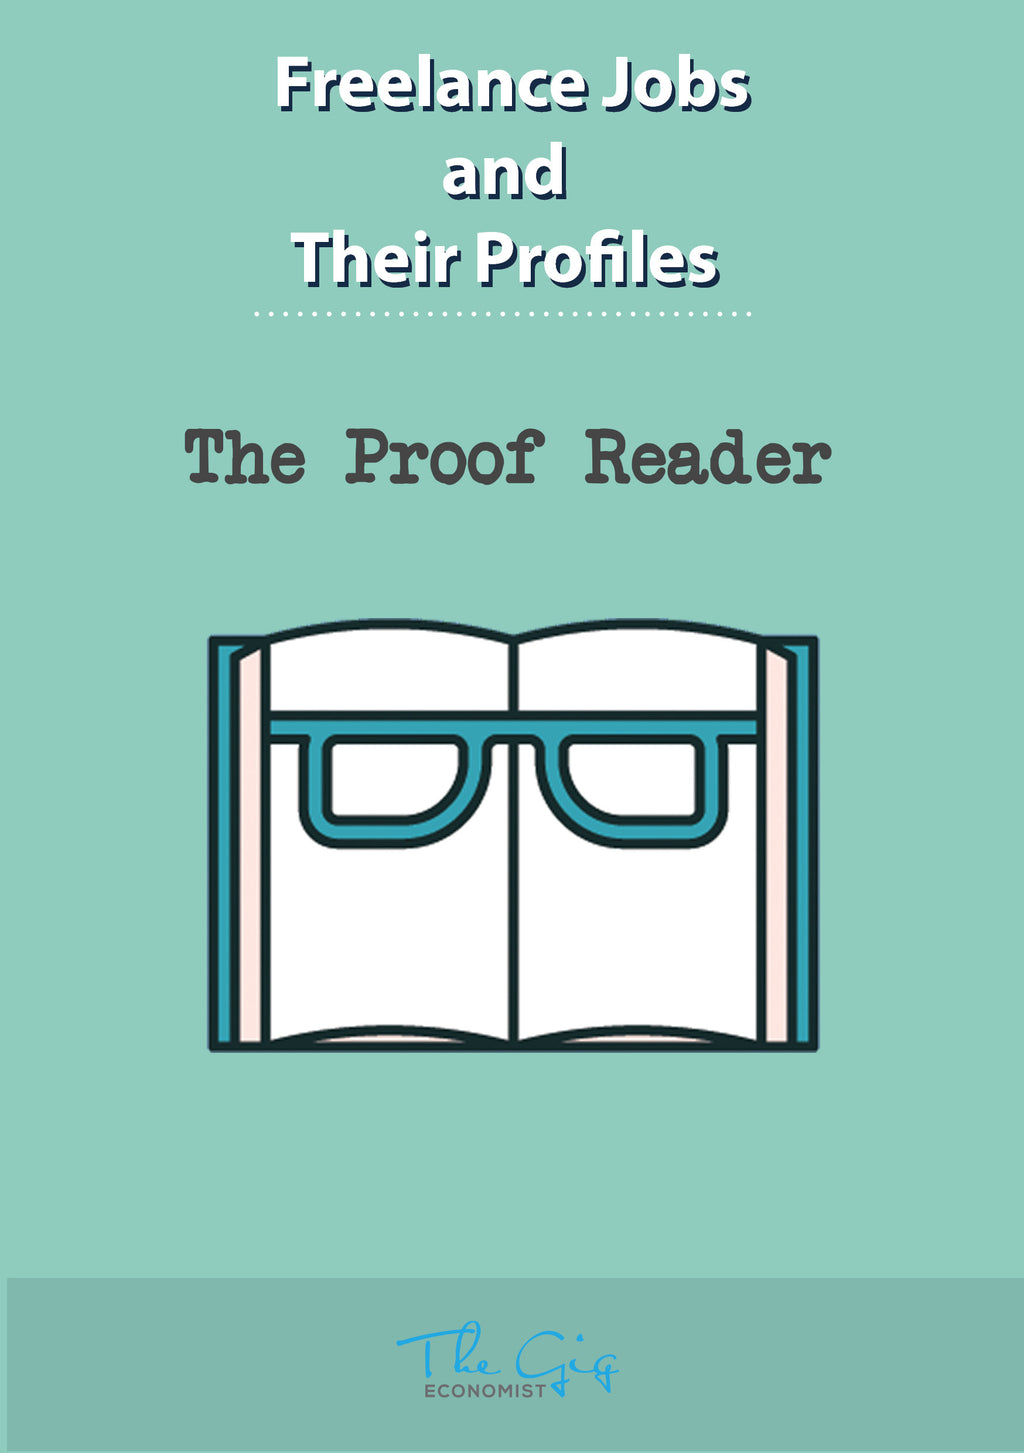 Freelance Proofreader Job Profile | The Gig Economist